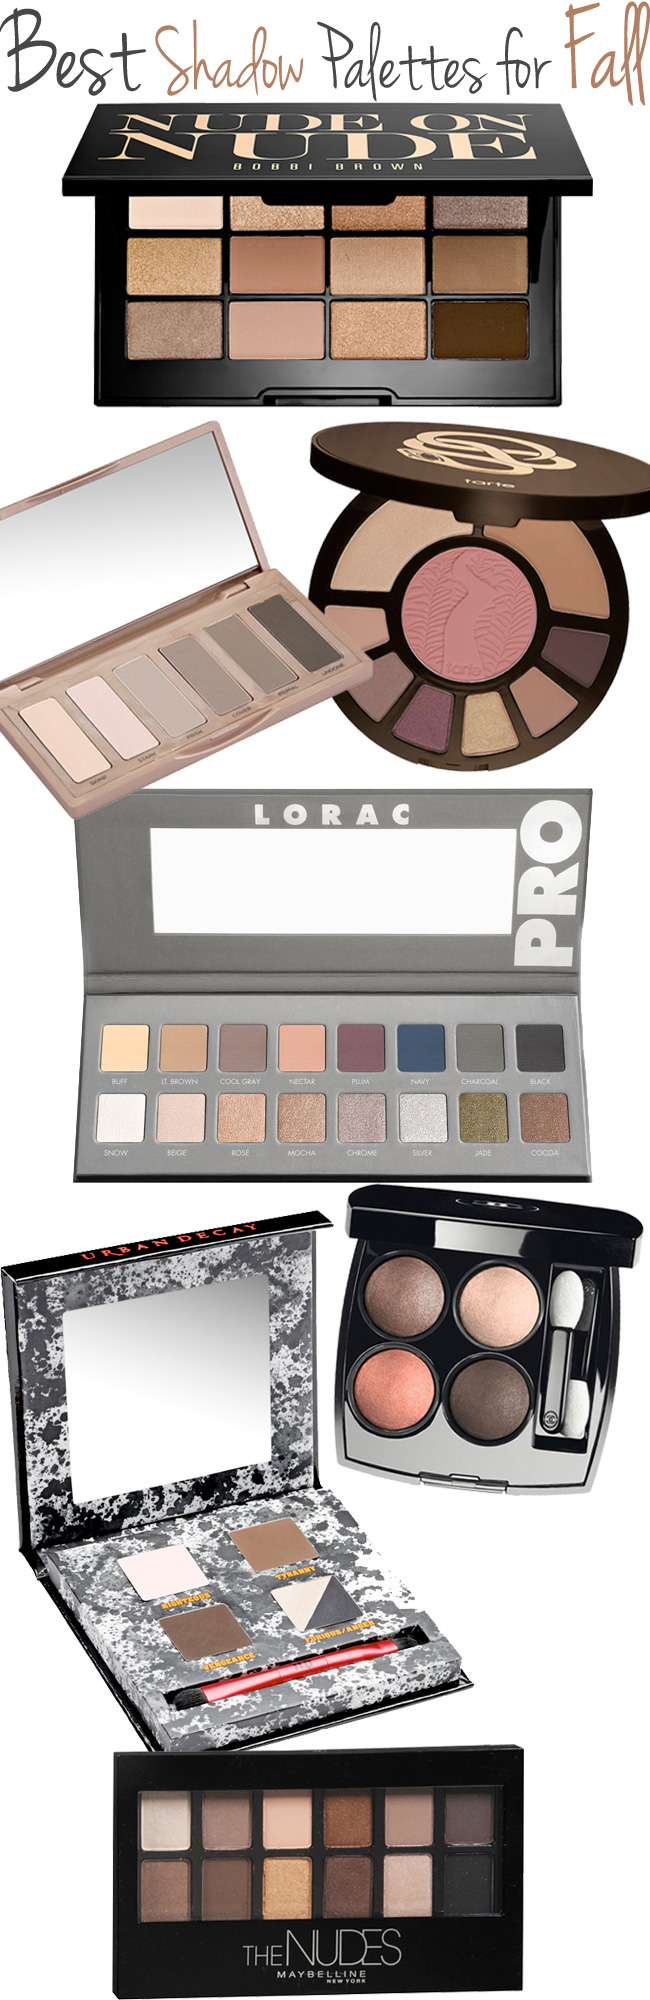 Top 7 Shadow Palettes For Fall. U2014 Beautiful Makeup Search